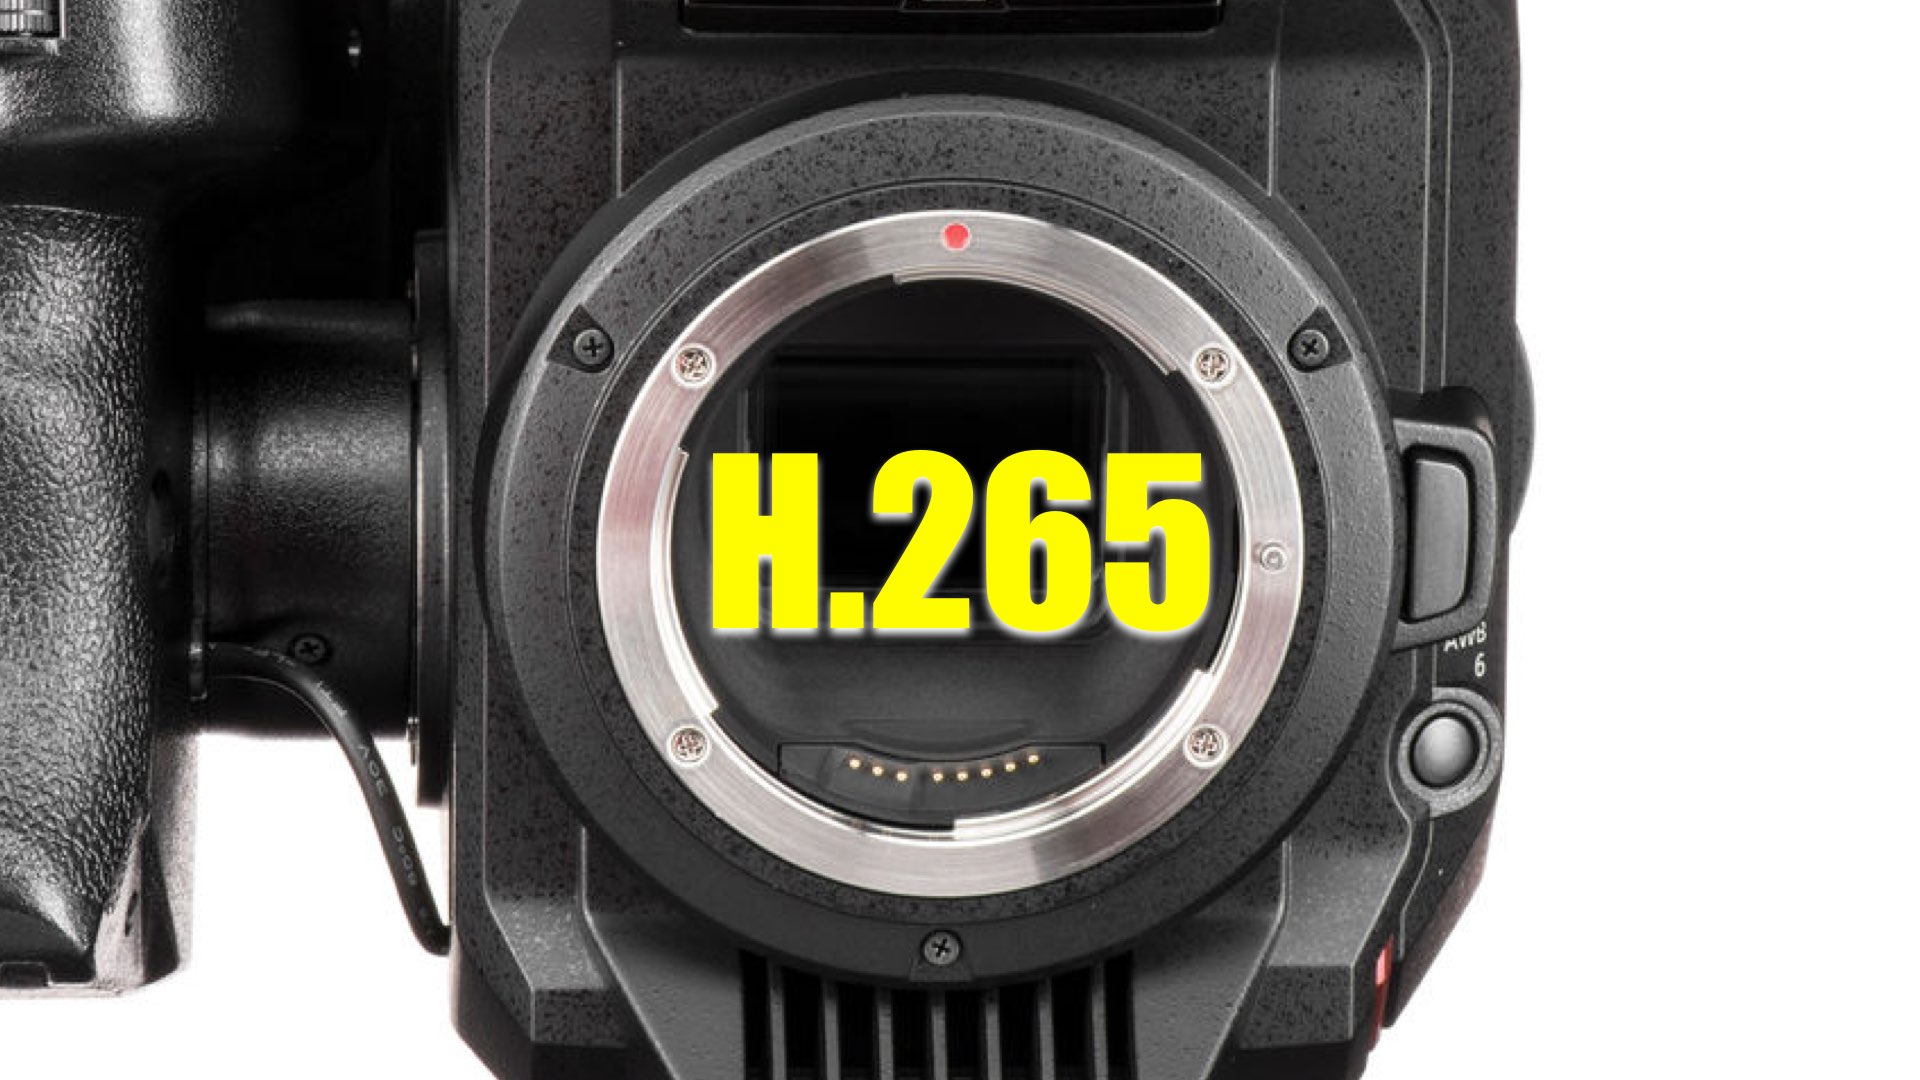 Panasonic EVA-1 new Firmware Update: H 265 Analysis and Advantages